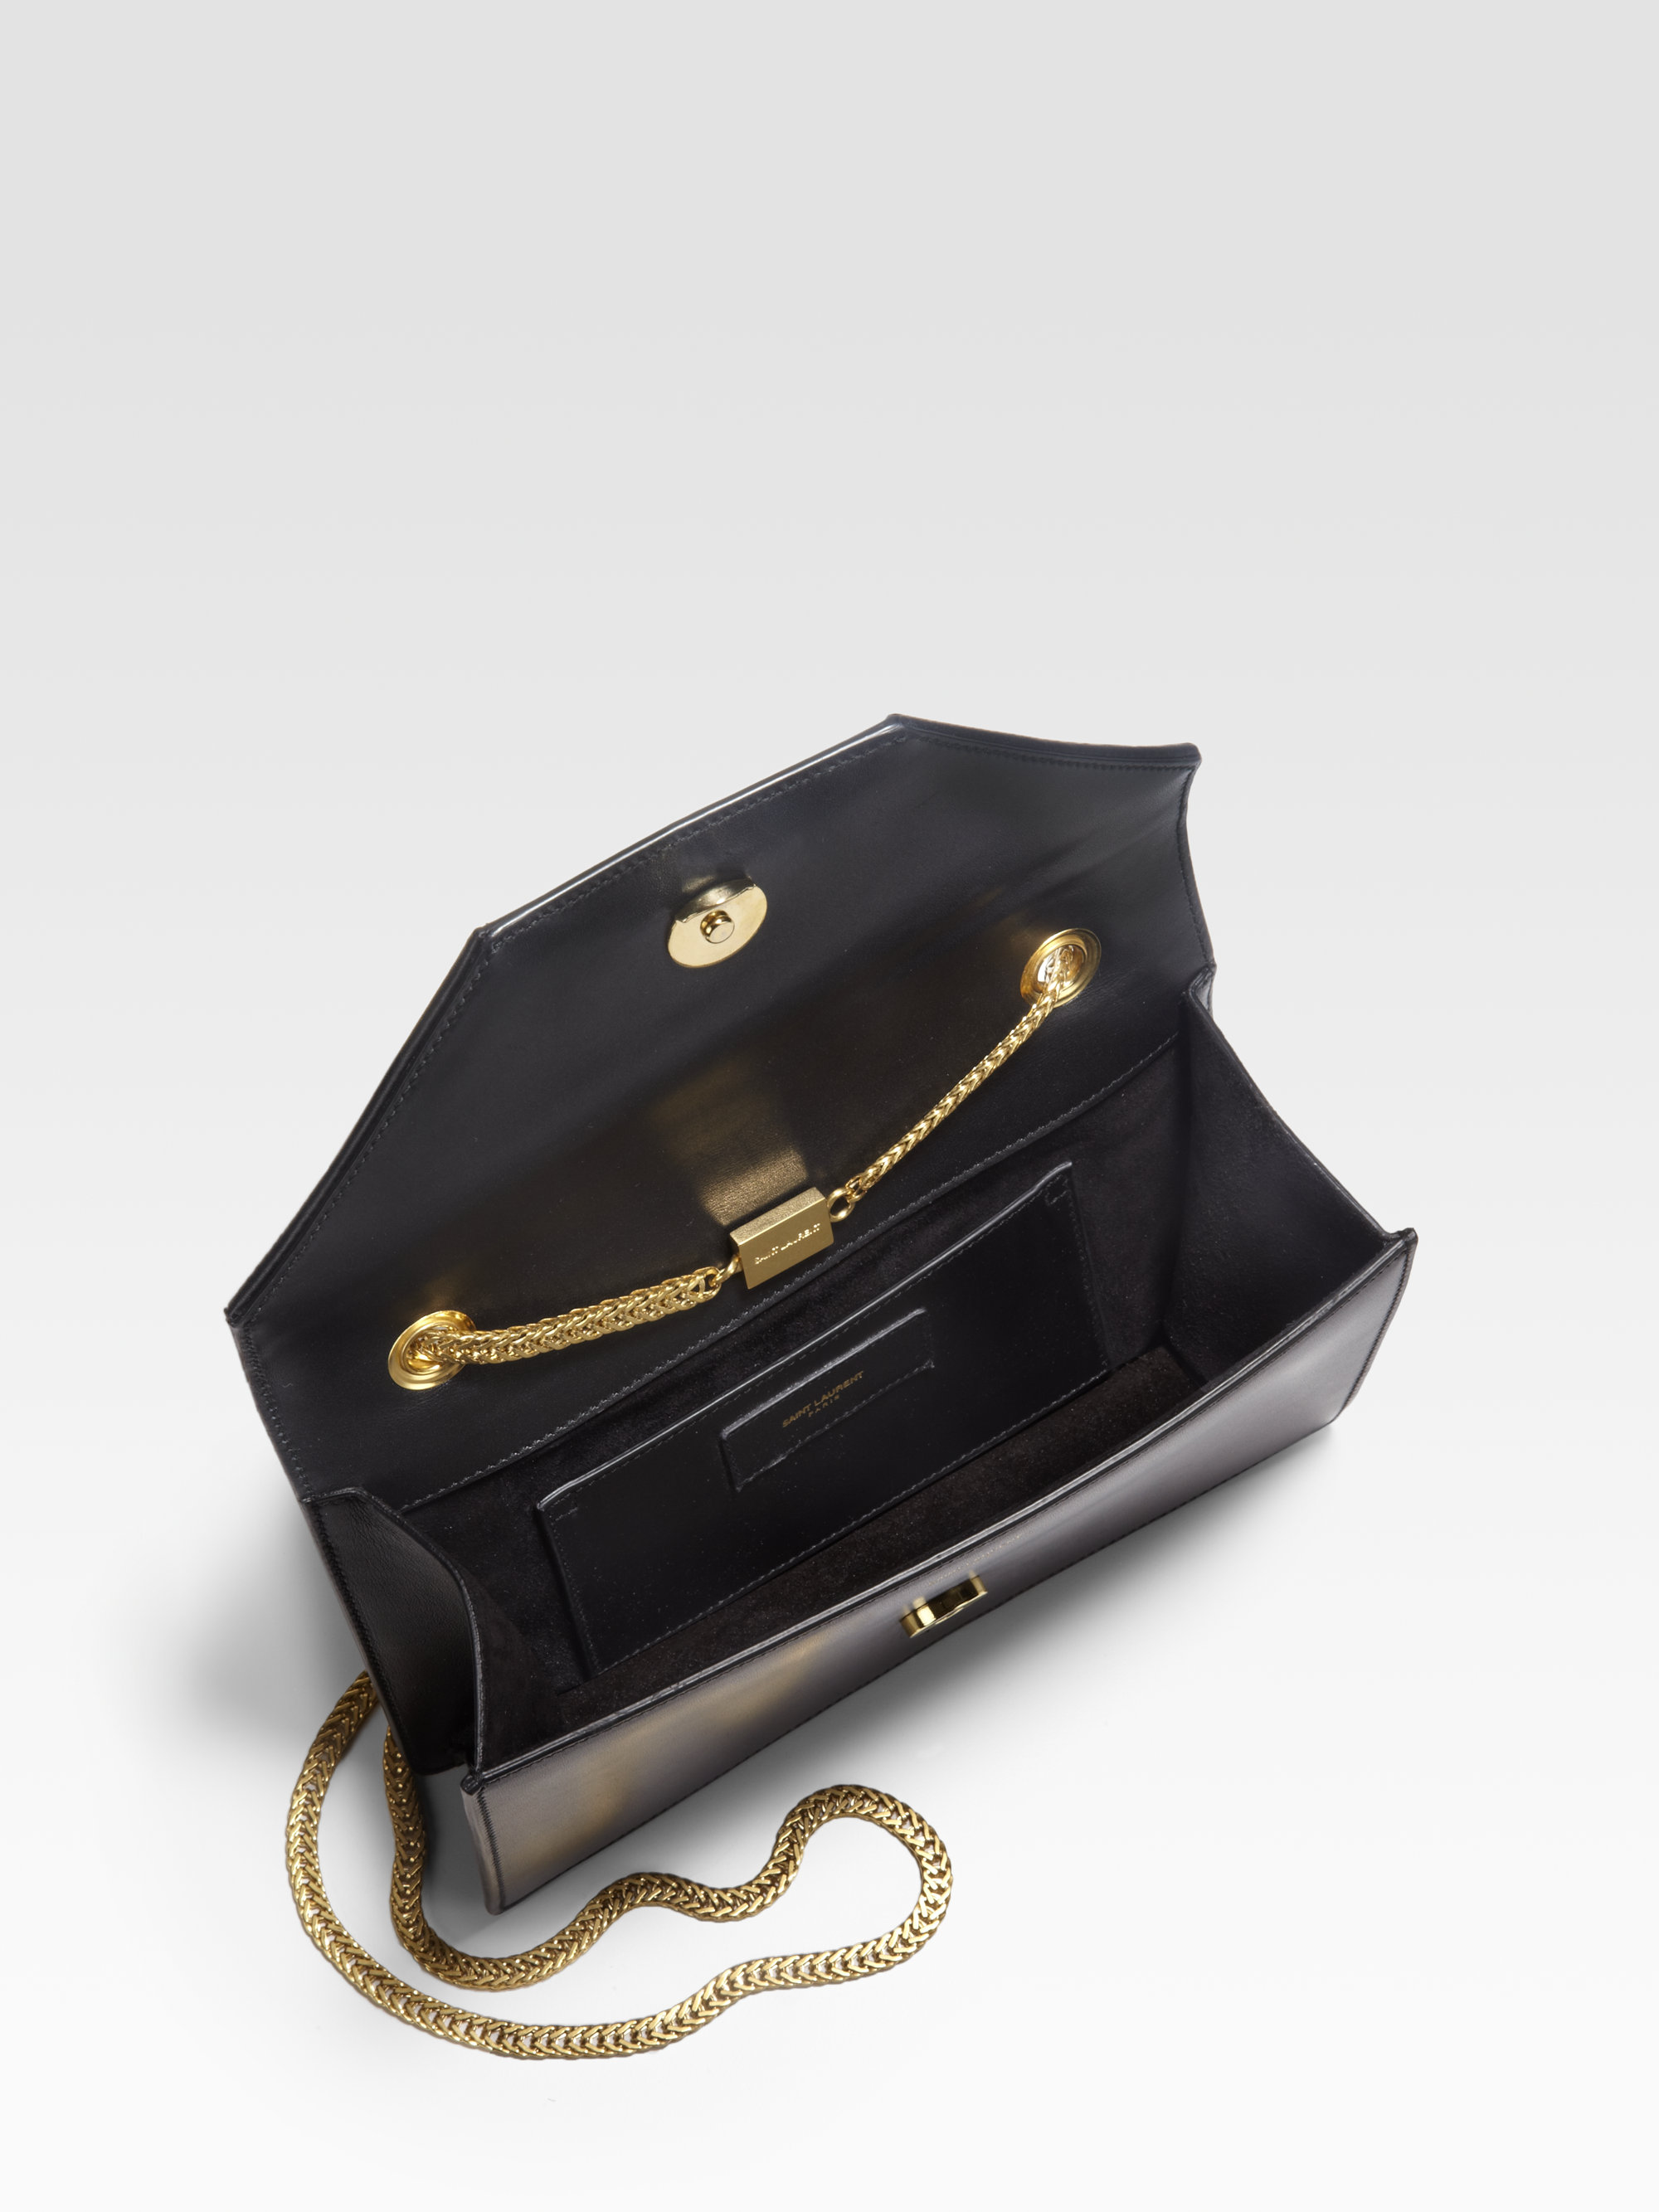 6e22ce96b9 Gallery. Previously sold at: Saks Fifth Avenue · Women's Saint Laurent Betty